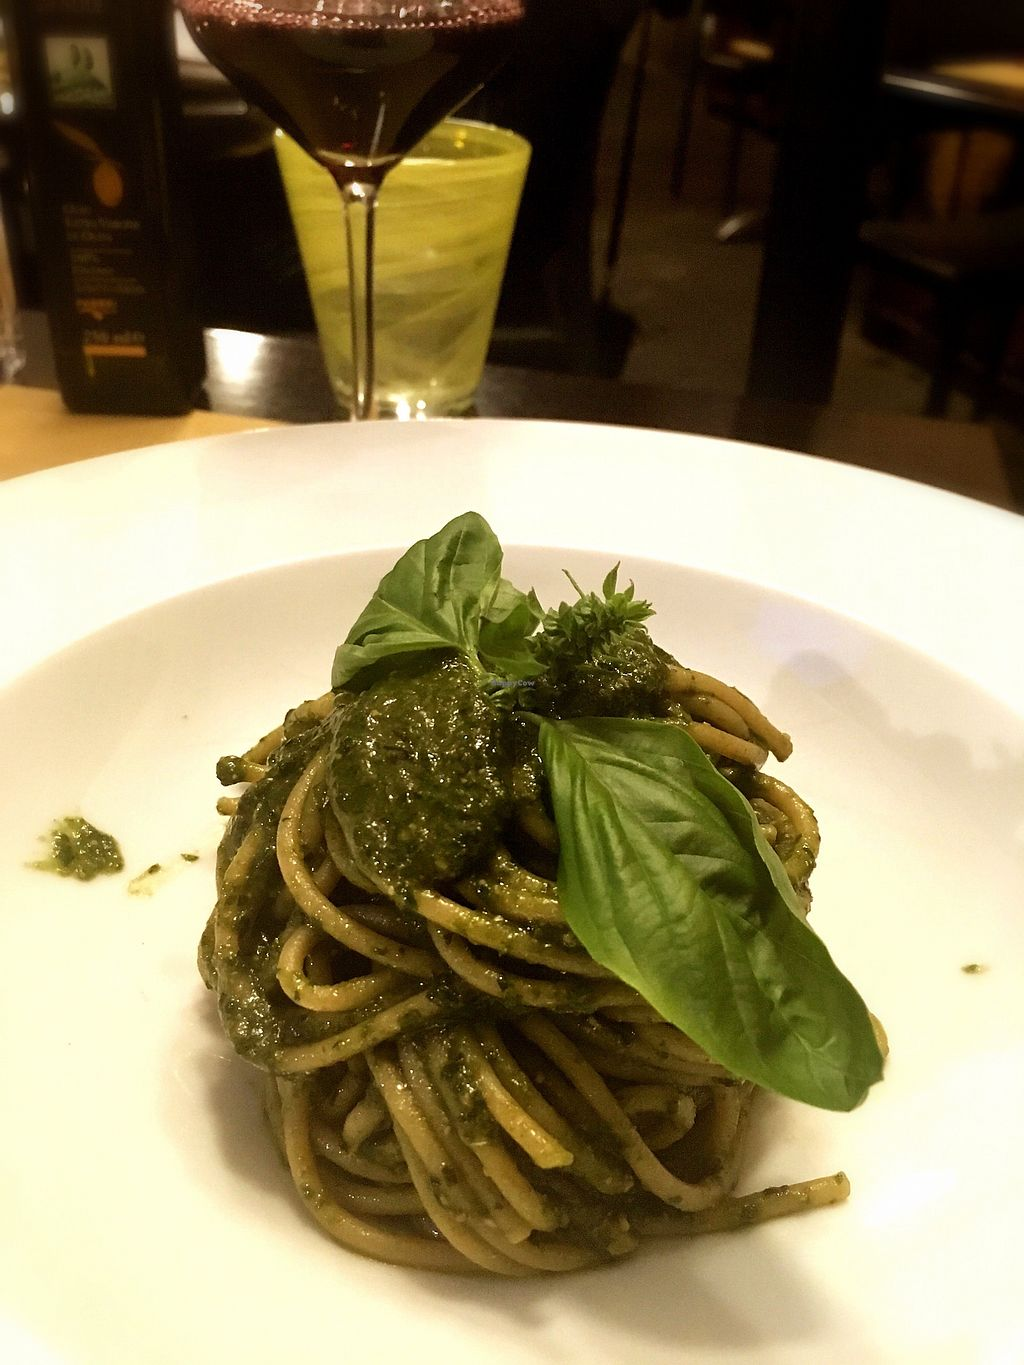 """Photo of Cantine Bernardini  by <a href=""""/members/profile/FranMcgarryArtist"""">FranMcgarryArtist</a> <br/>Pasta with pesto and Mint Vegan <br/> September 15, 2017  - <a href='/contact/abuse/image/80621/304651'>Report</a>"""